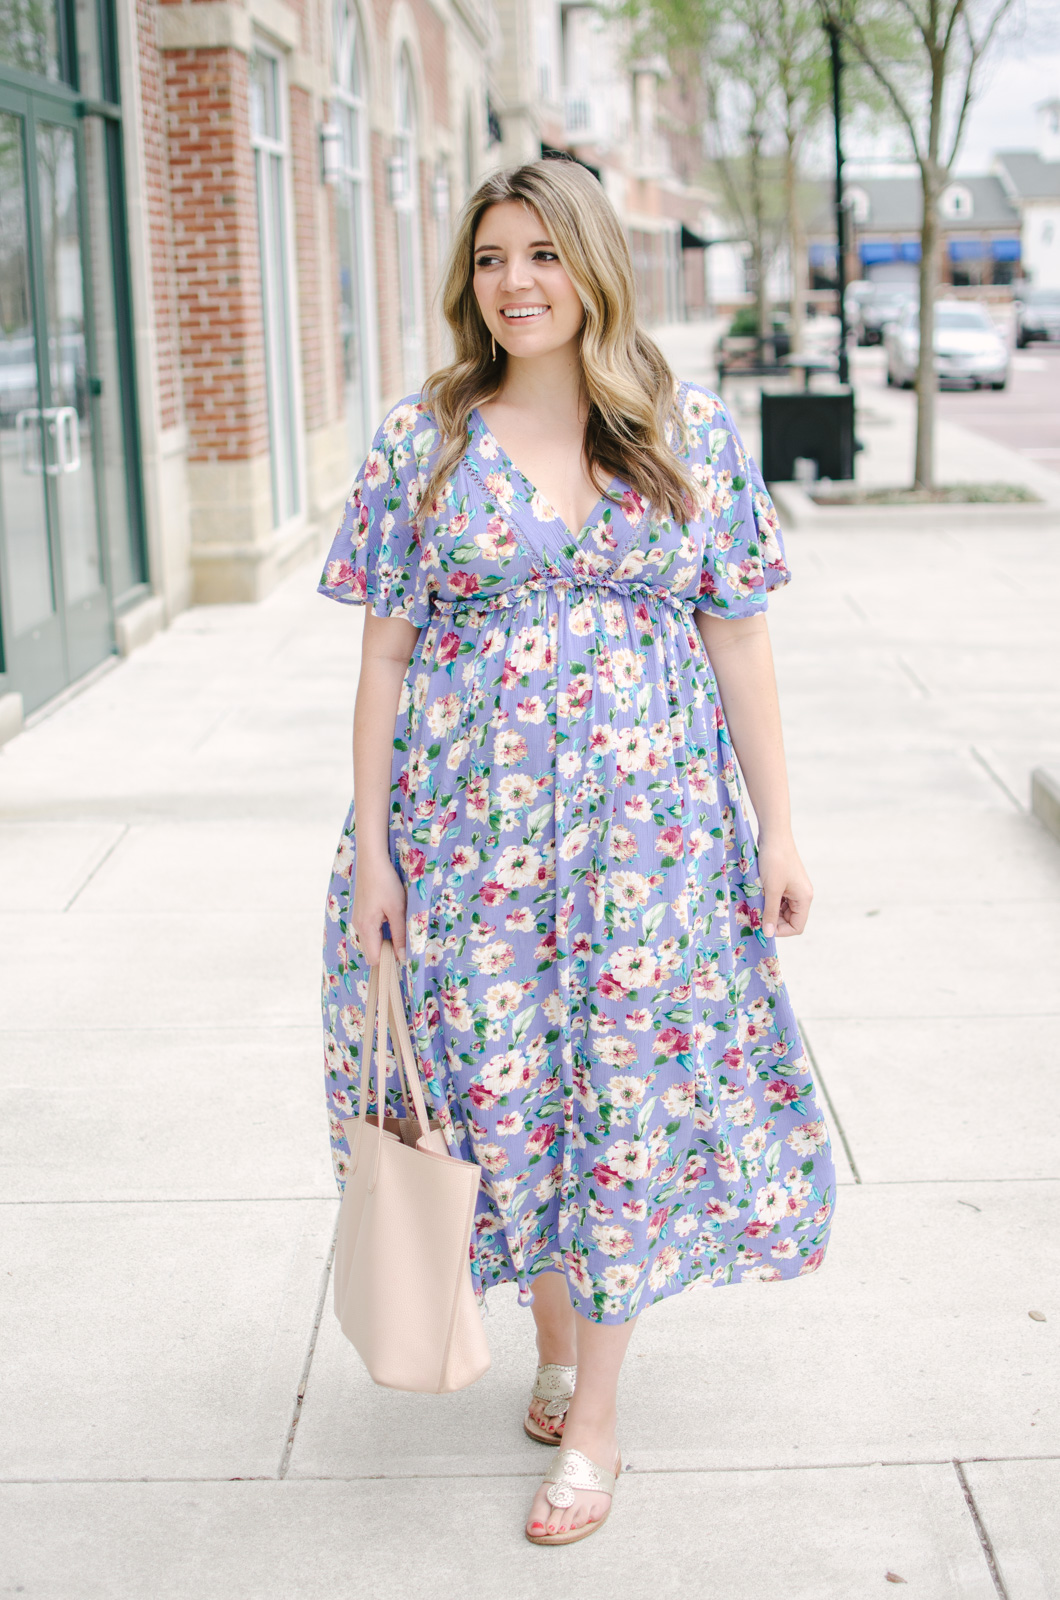 spring pregnancy must-have maxi dresses - non-maternity maxi dress for pregnancy spring | bylaurenm.com